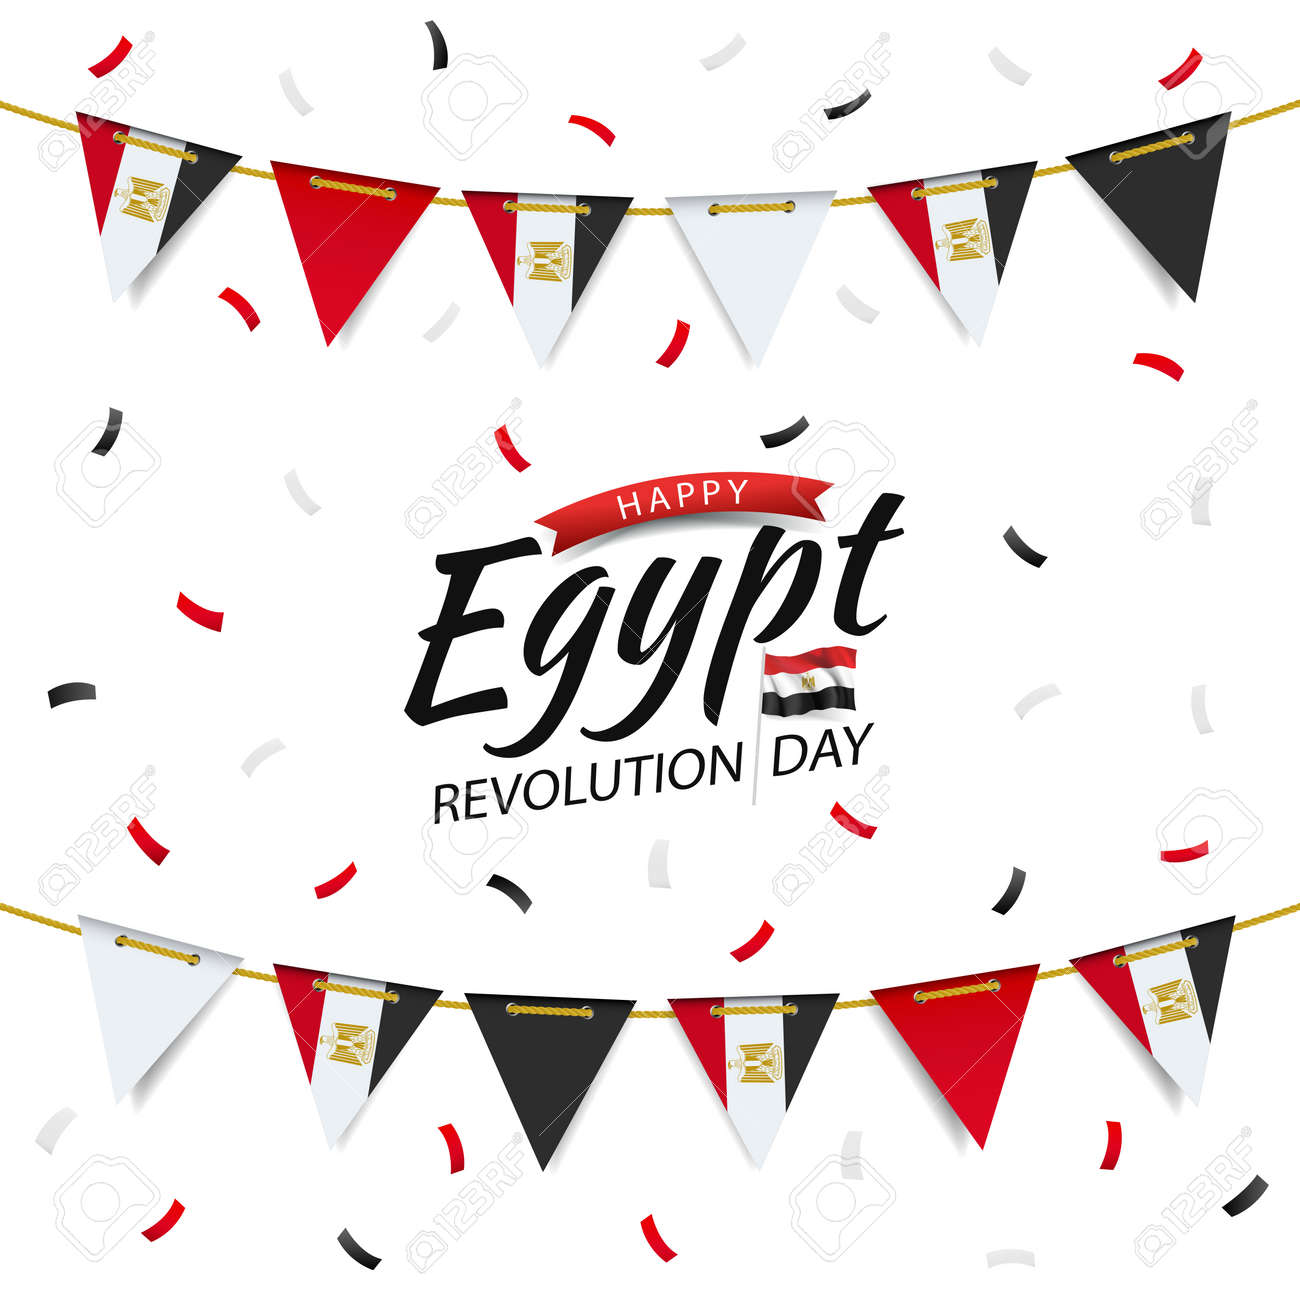 Vector Illustration of Revolution Day Egypt. Garland with the egyptian flag on a white background. - 170364768